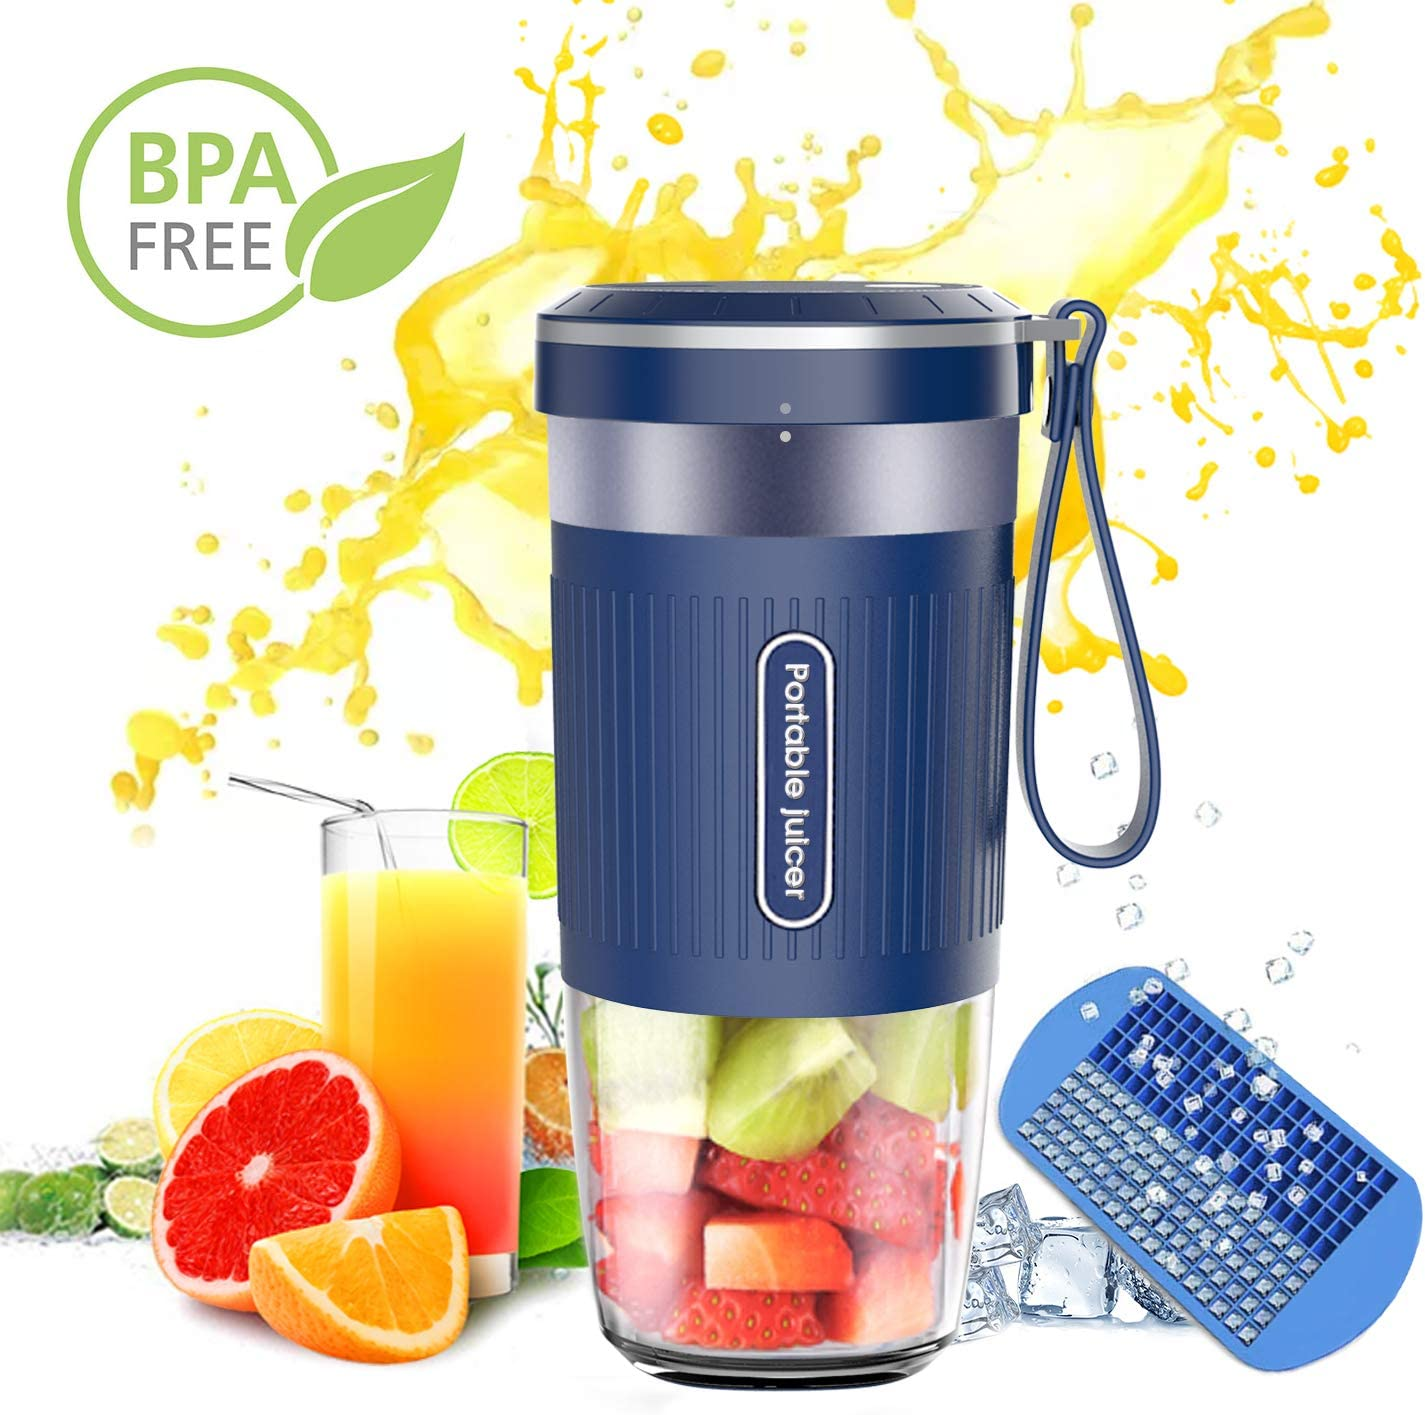 Portable Blender,AUZKIN Cordless Mini Personal Blender Small Smoothie Blender USB Fruit Juicer Mixer – Home Outdoor Travel Office – USB Rechargeable,IP68 Waterproof, BPA Free